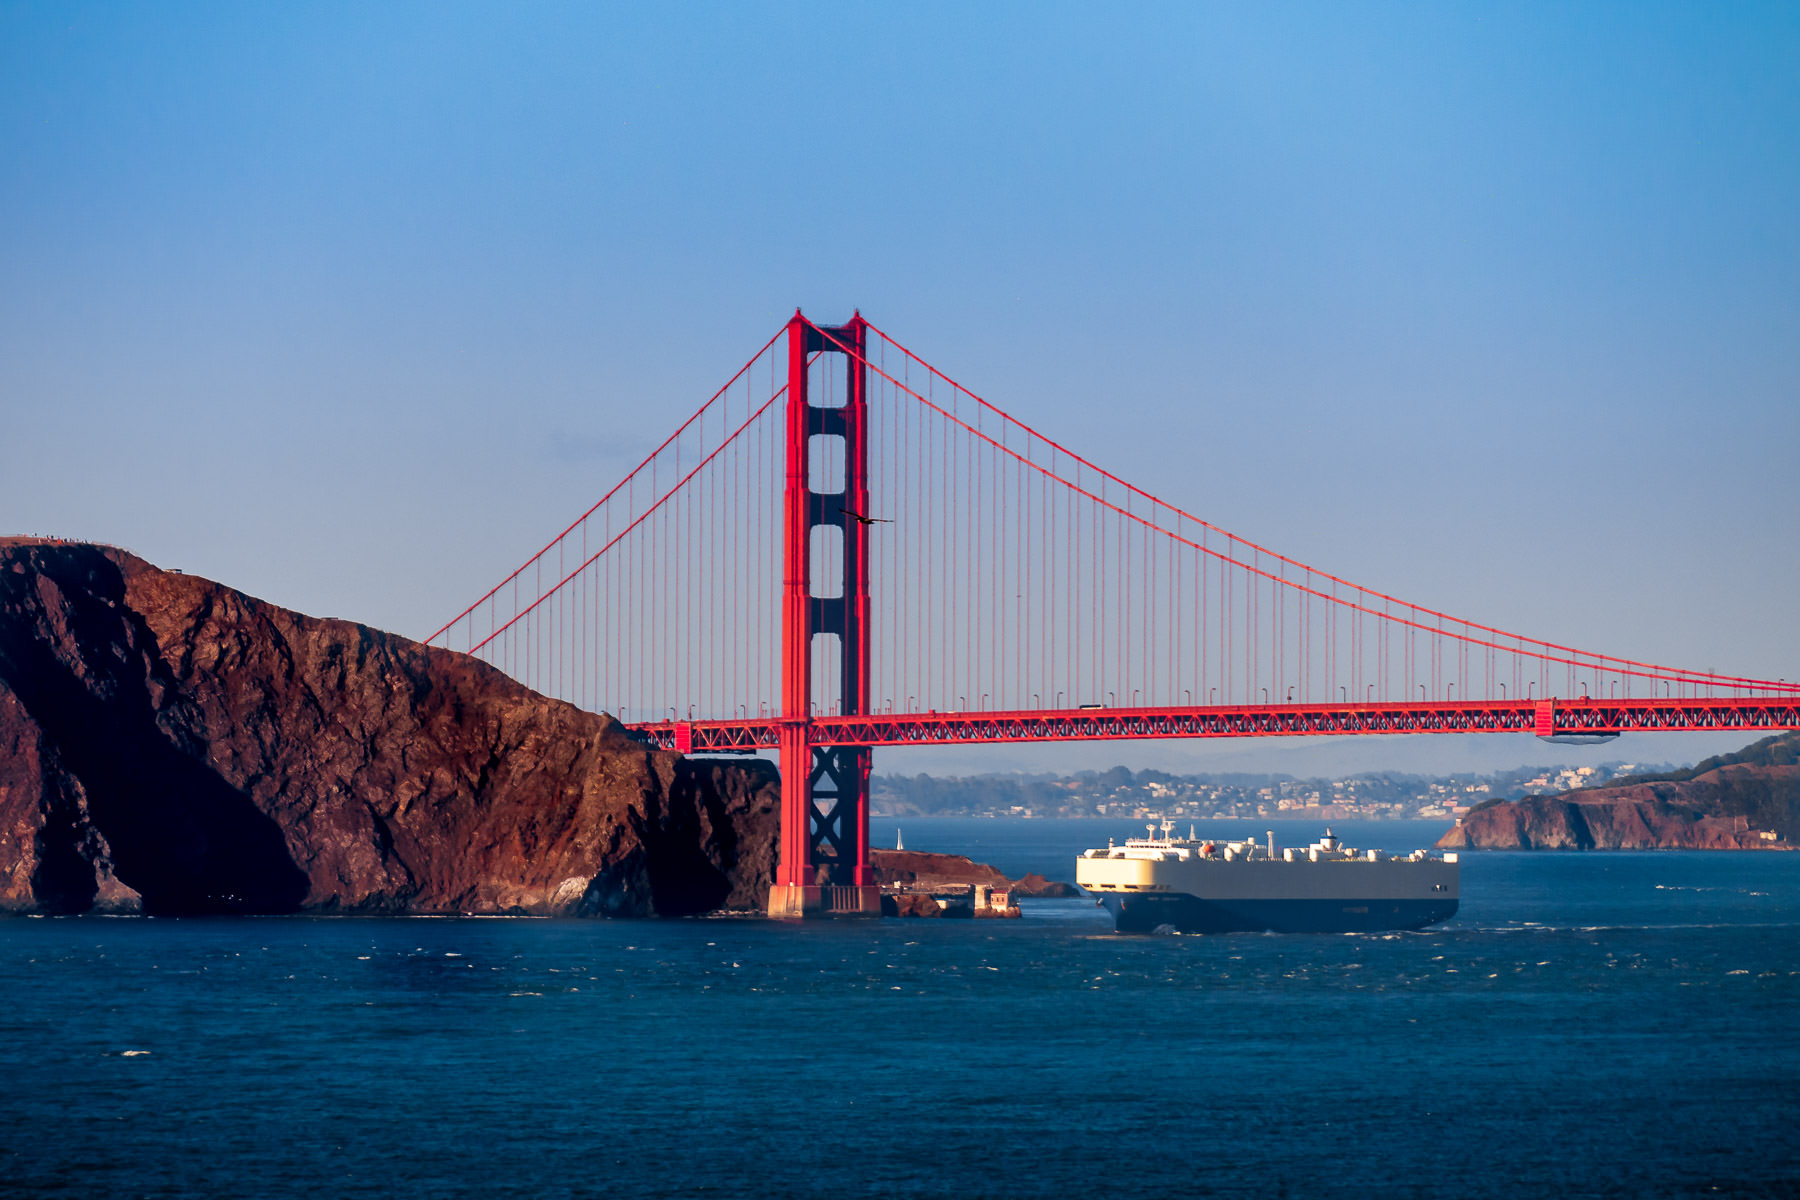 A roll-on/roll-off ship sails underneath the Golden Gate Bridge as it enters San Francisco Bay.